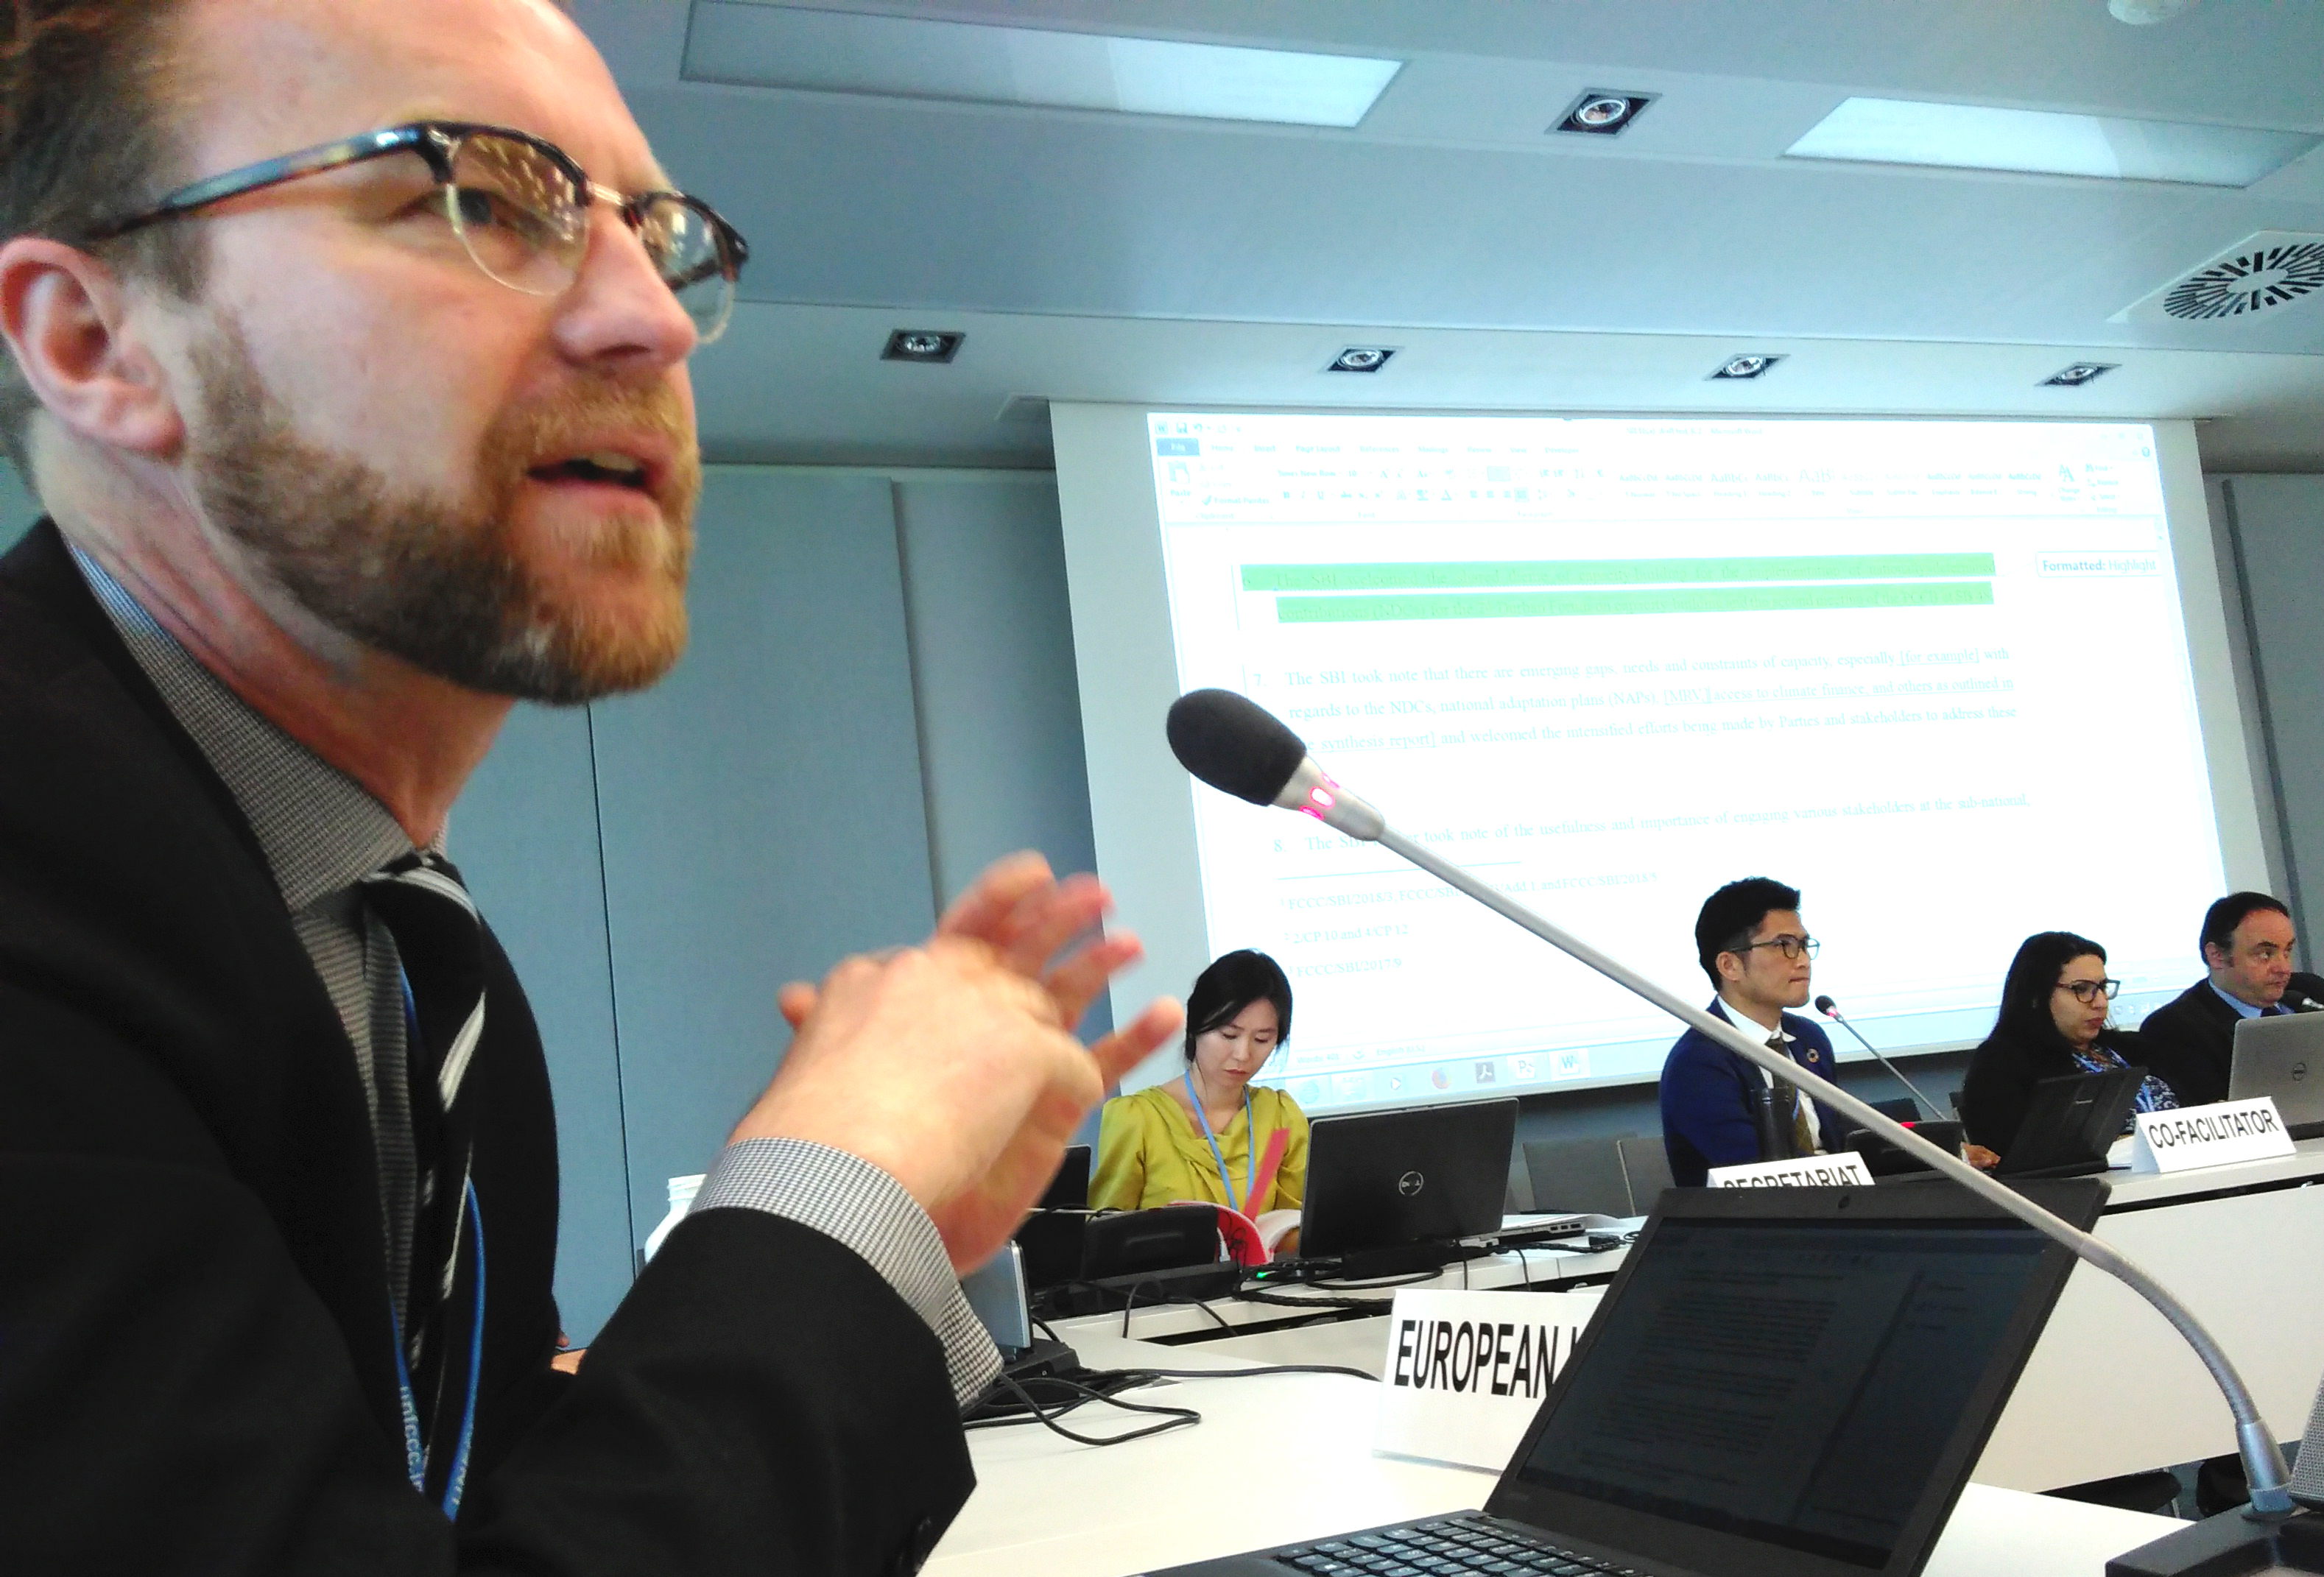 Petter Lydén speaking for the EU in the UN climate negotiations in Bonn, May 2018